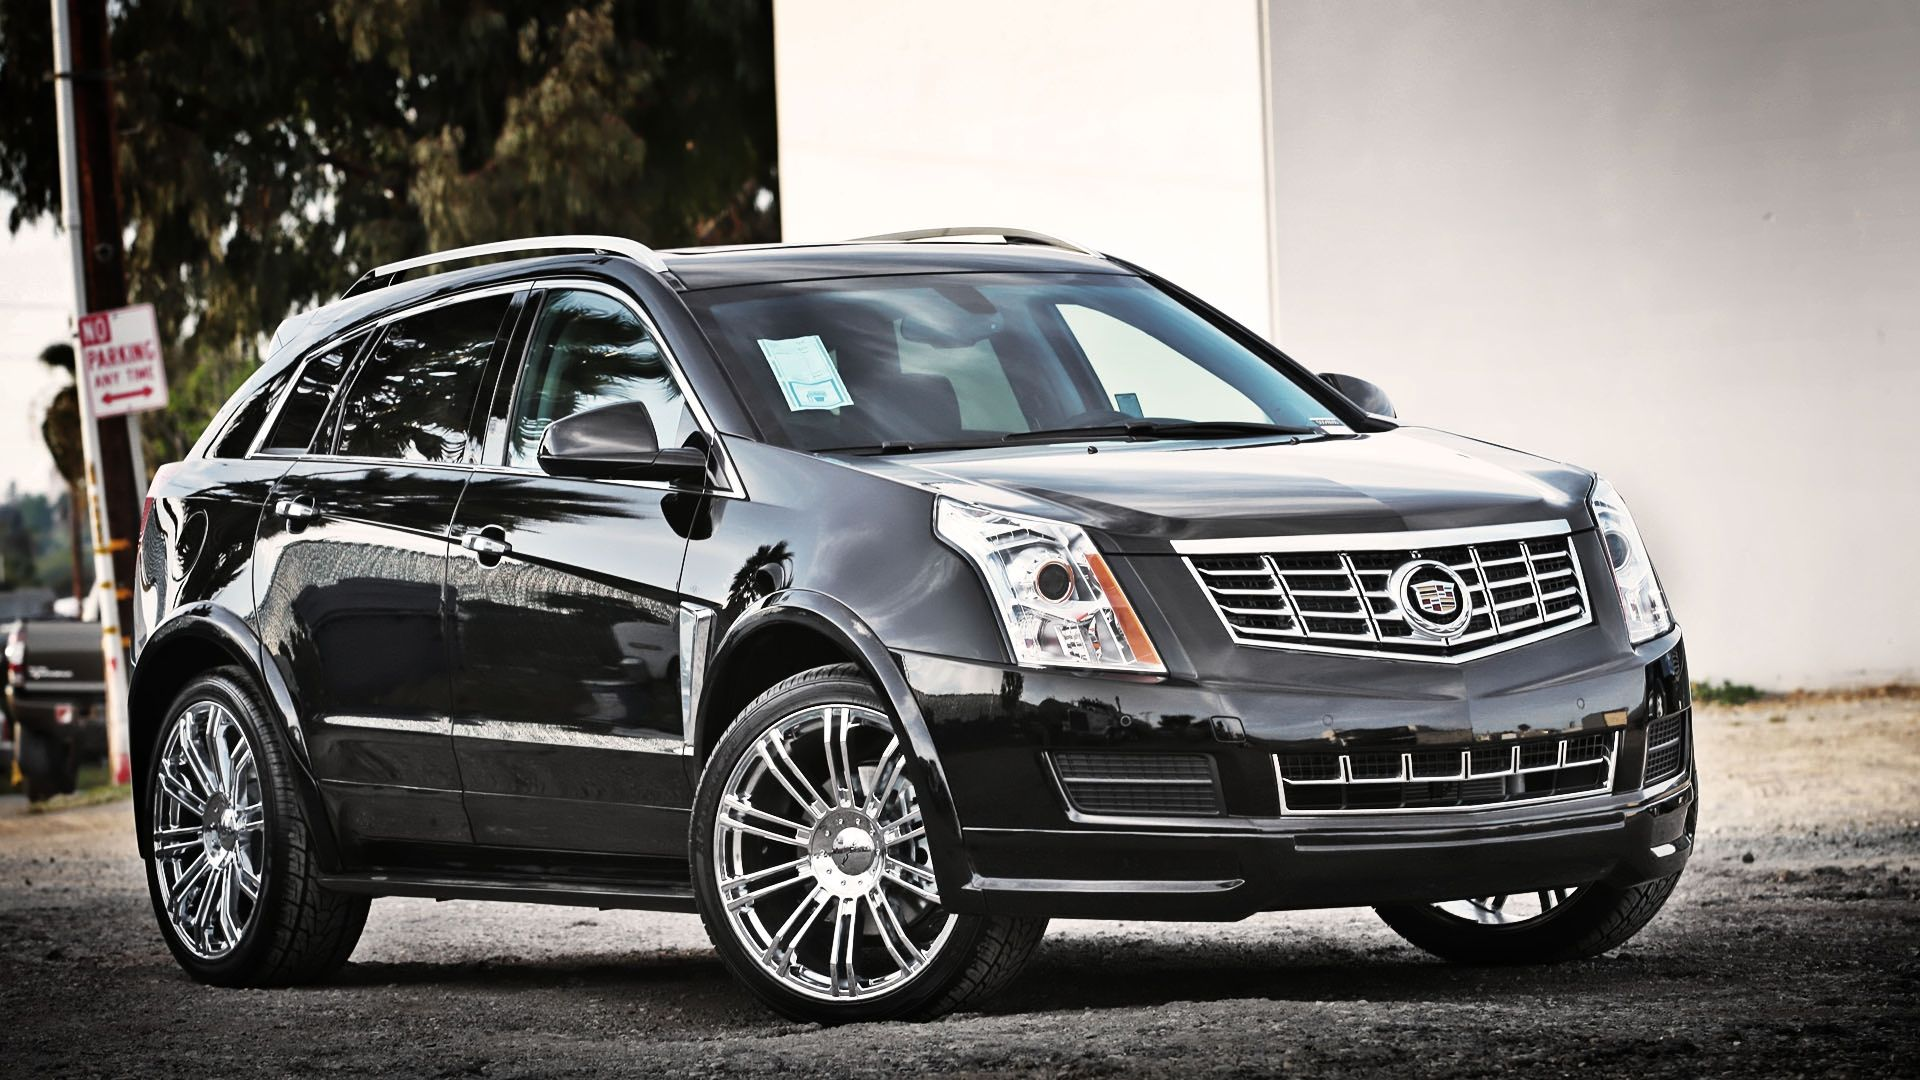 pin amb we hd cadillac latest sewell you update provides images wallpapers the srx